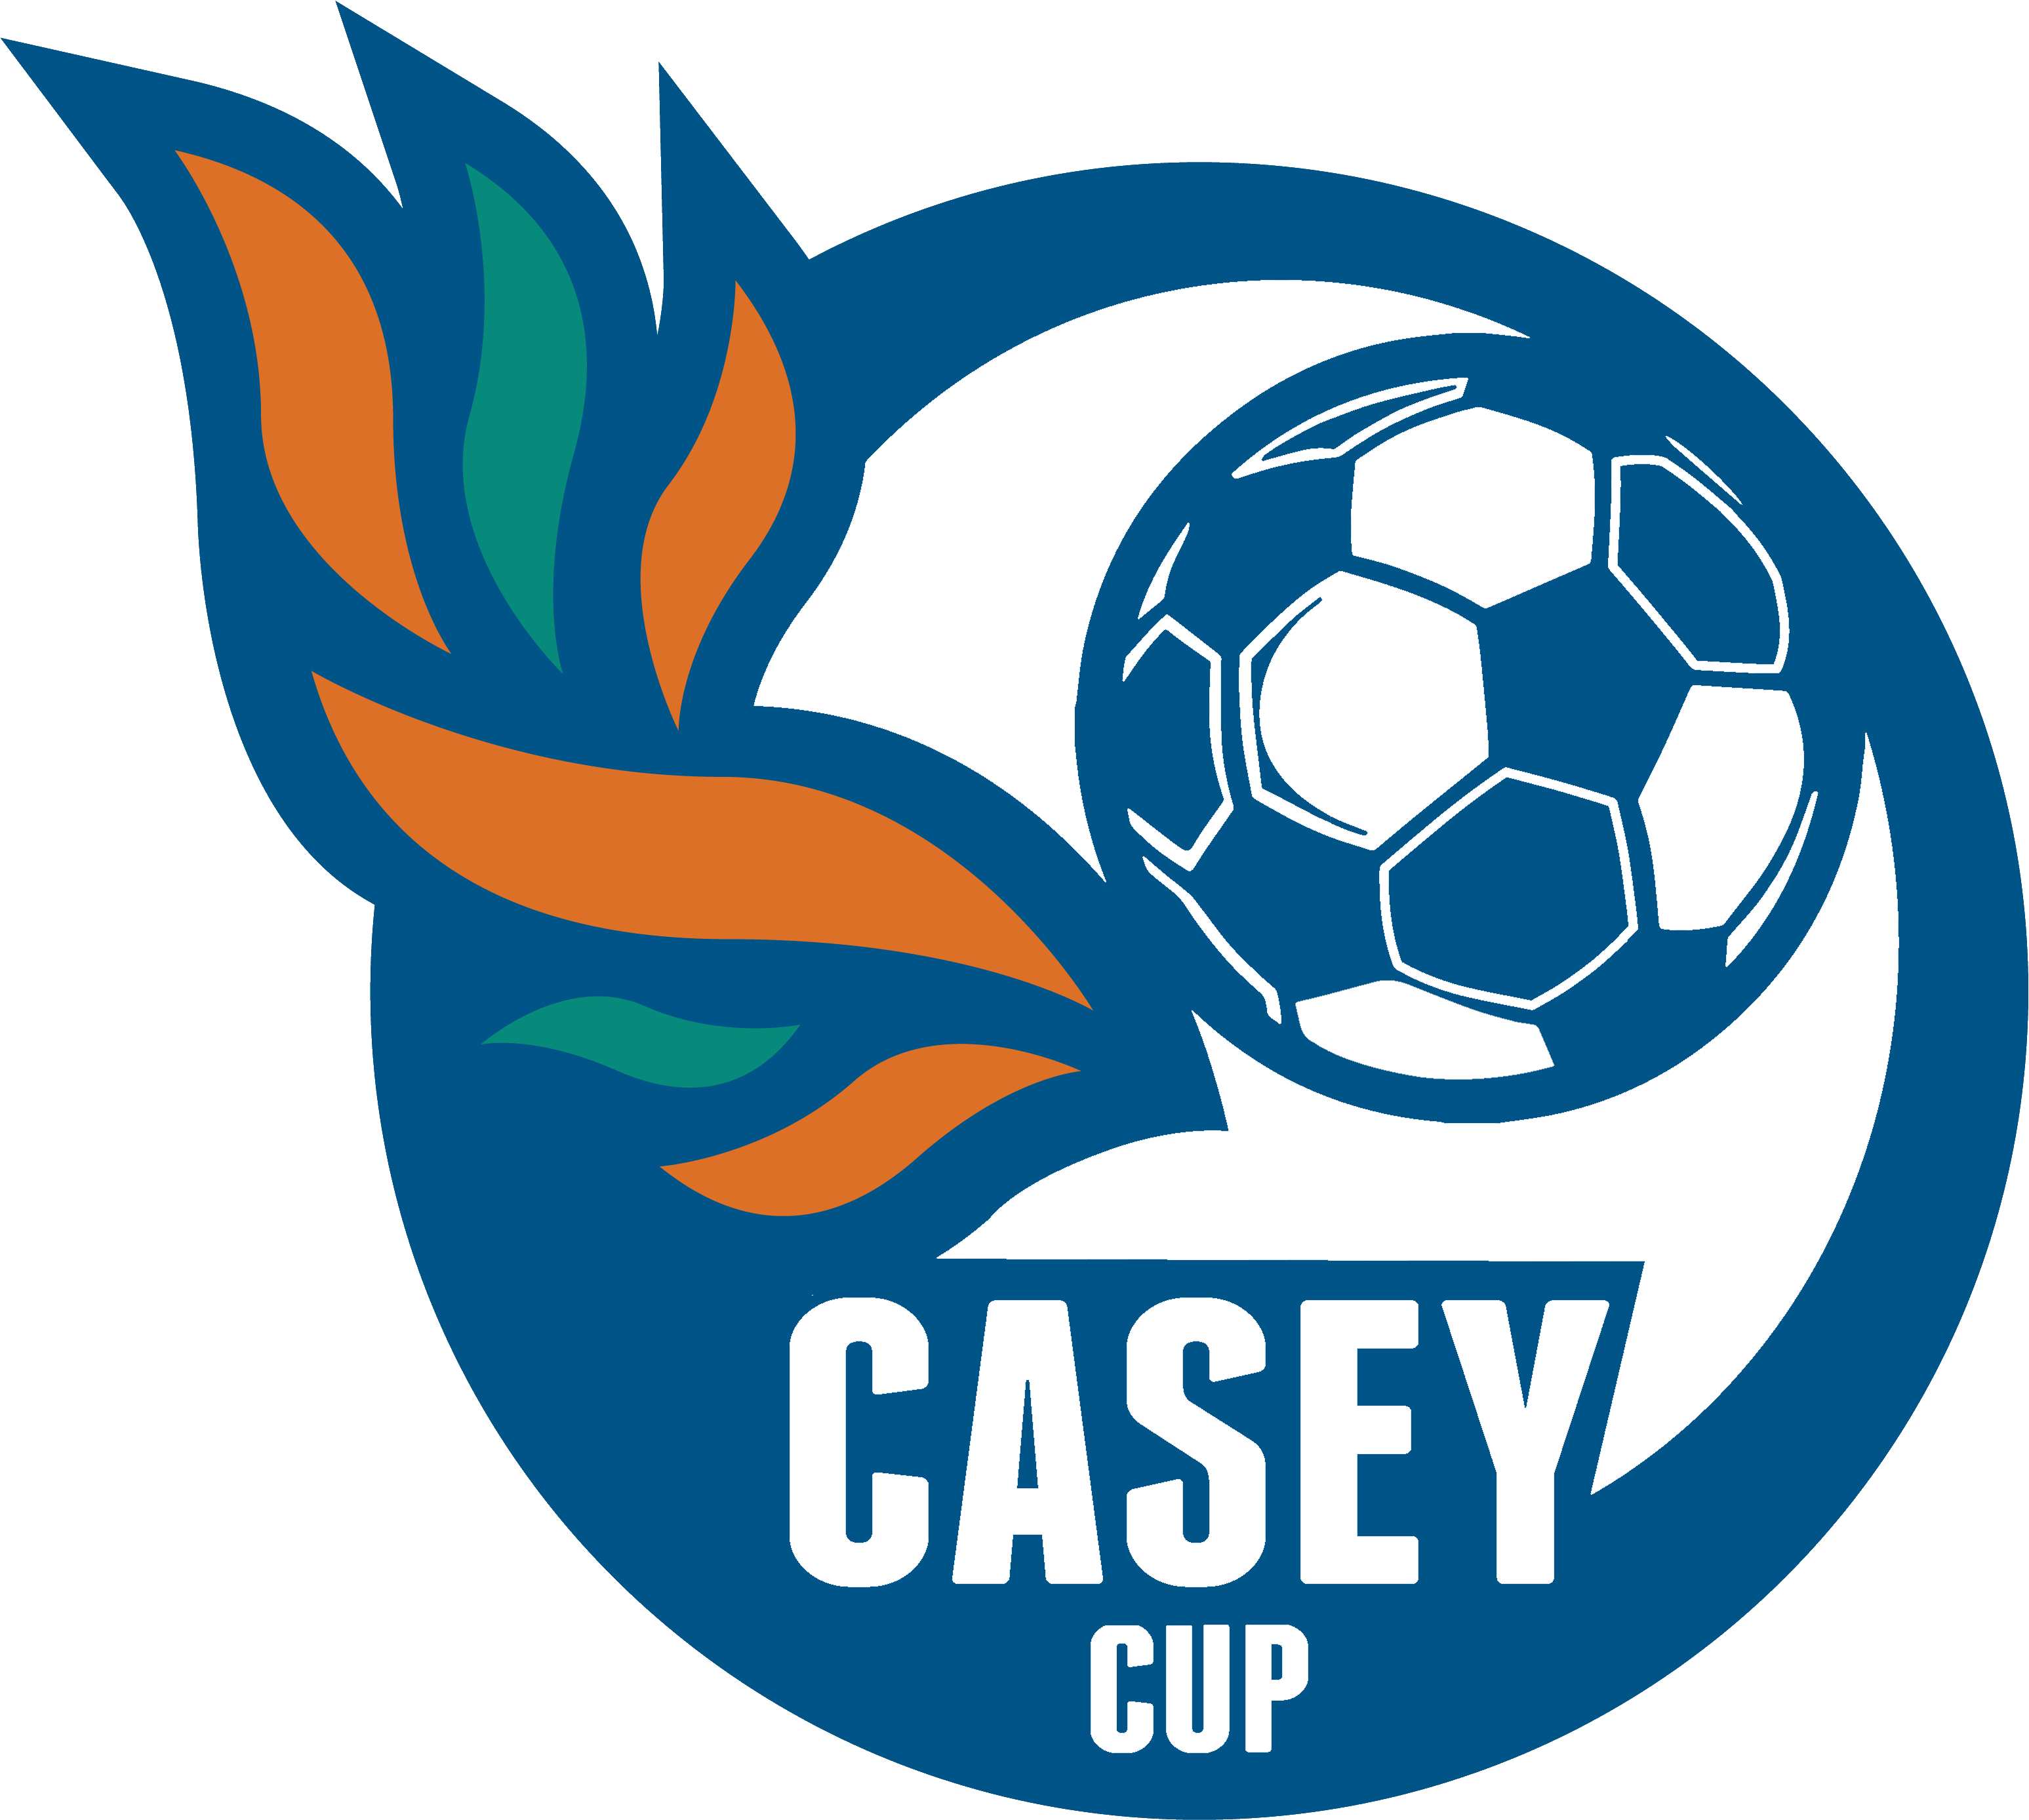 Casey Cup